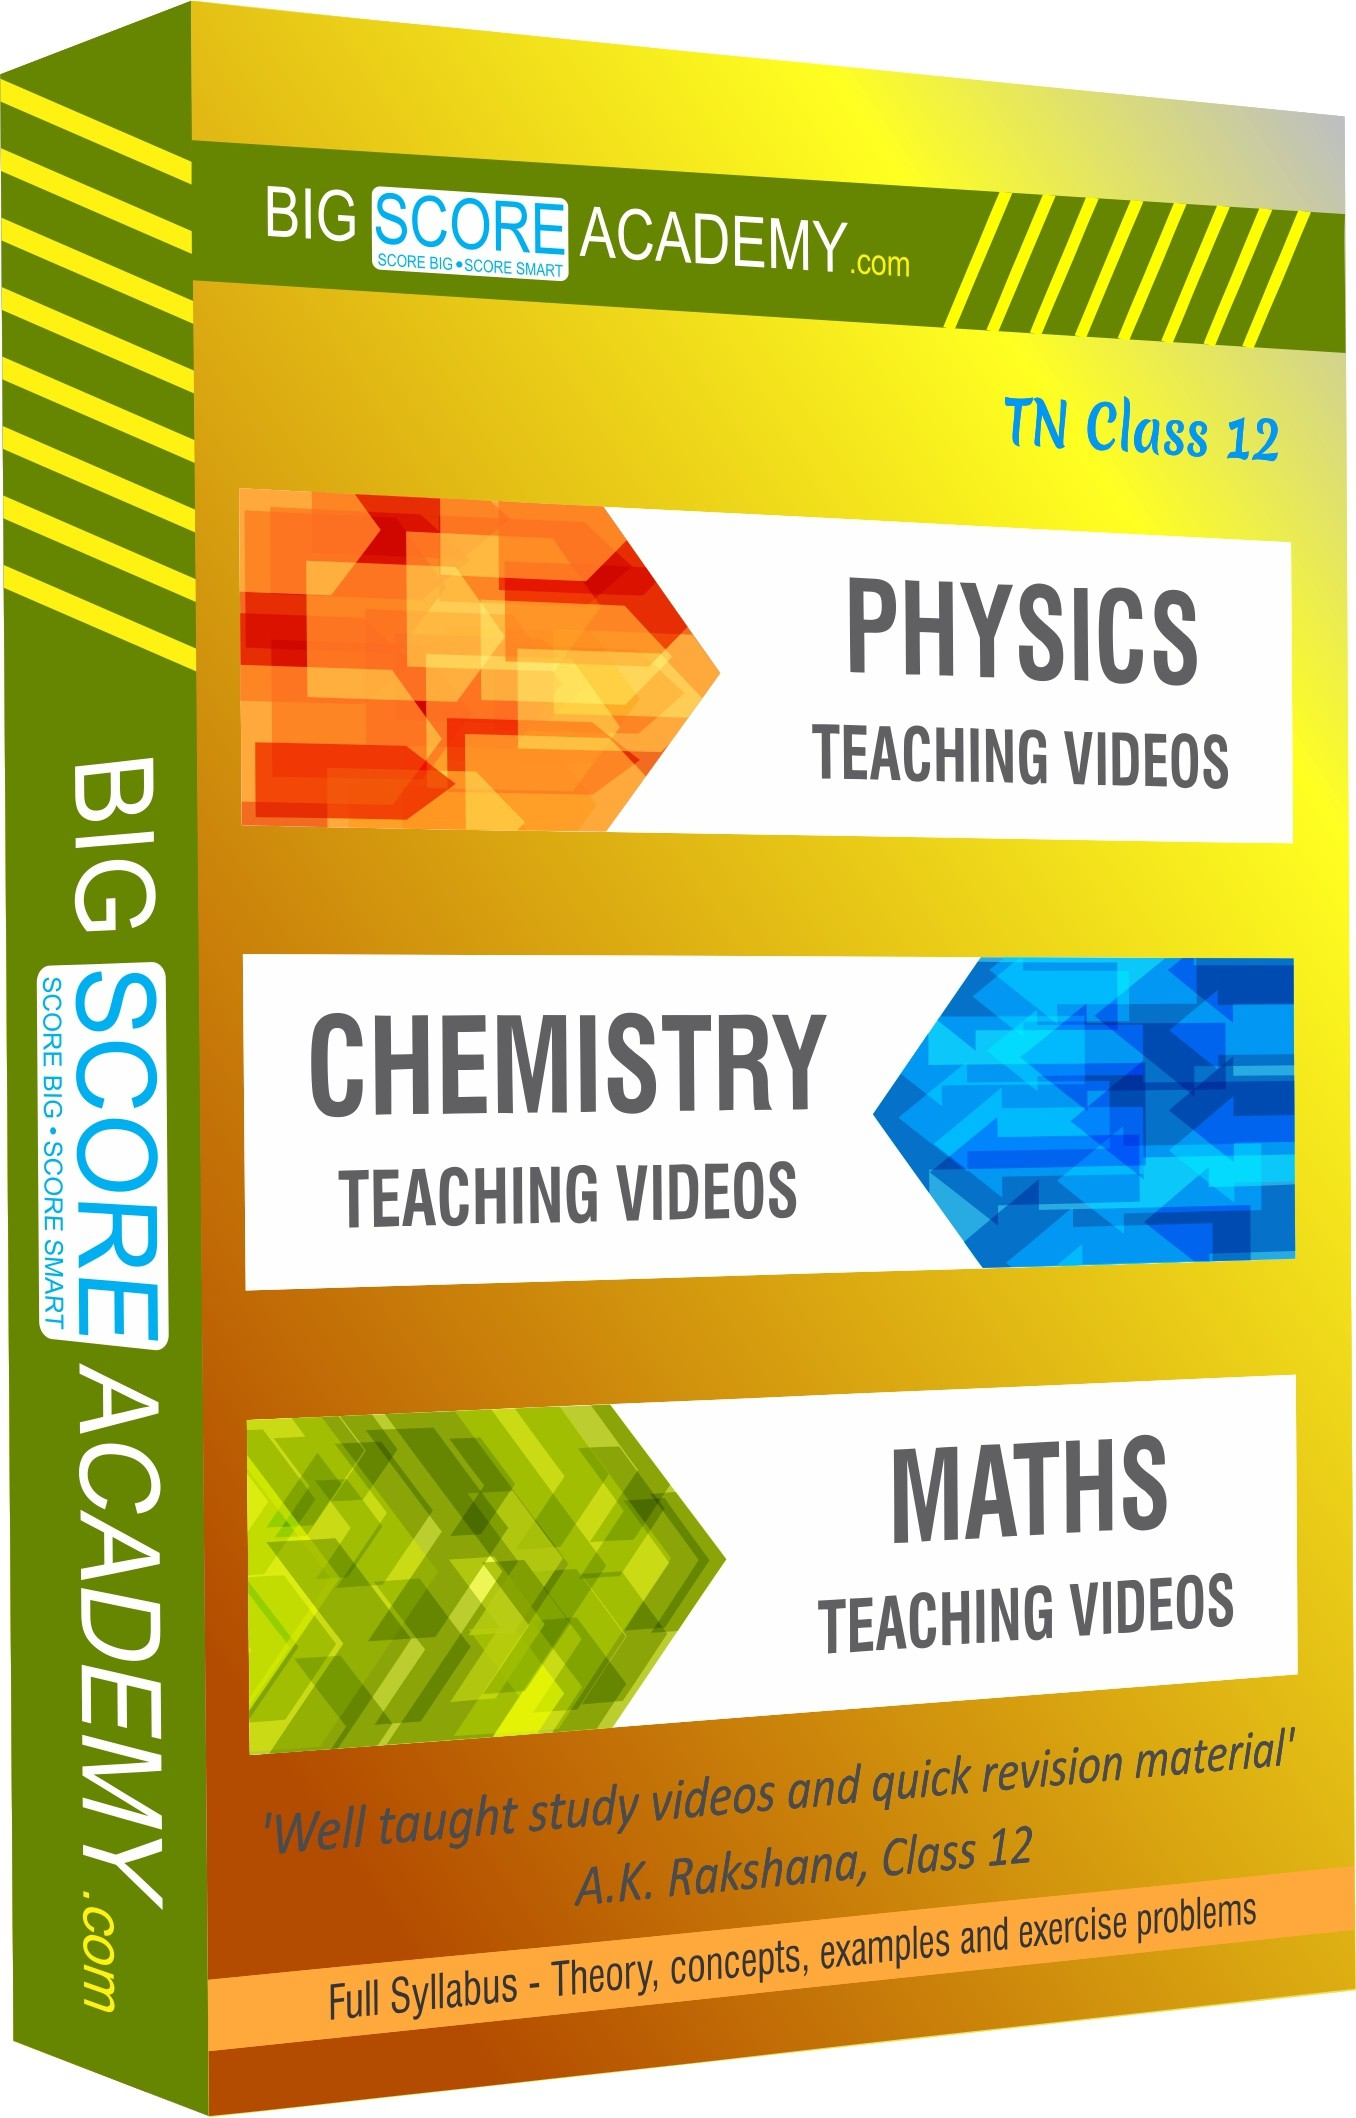 BigScoreAcademy.com Tamil Nadu Samacheer Kalvi Class 12 Combo Pack - Physics, Chemistry and Maths Full Syllabus Teaching Video(DVD)